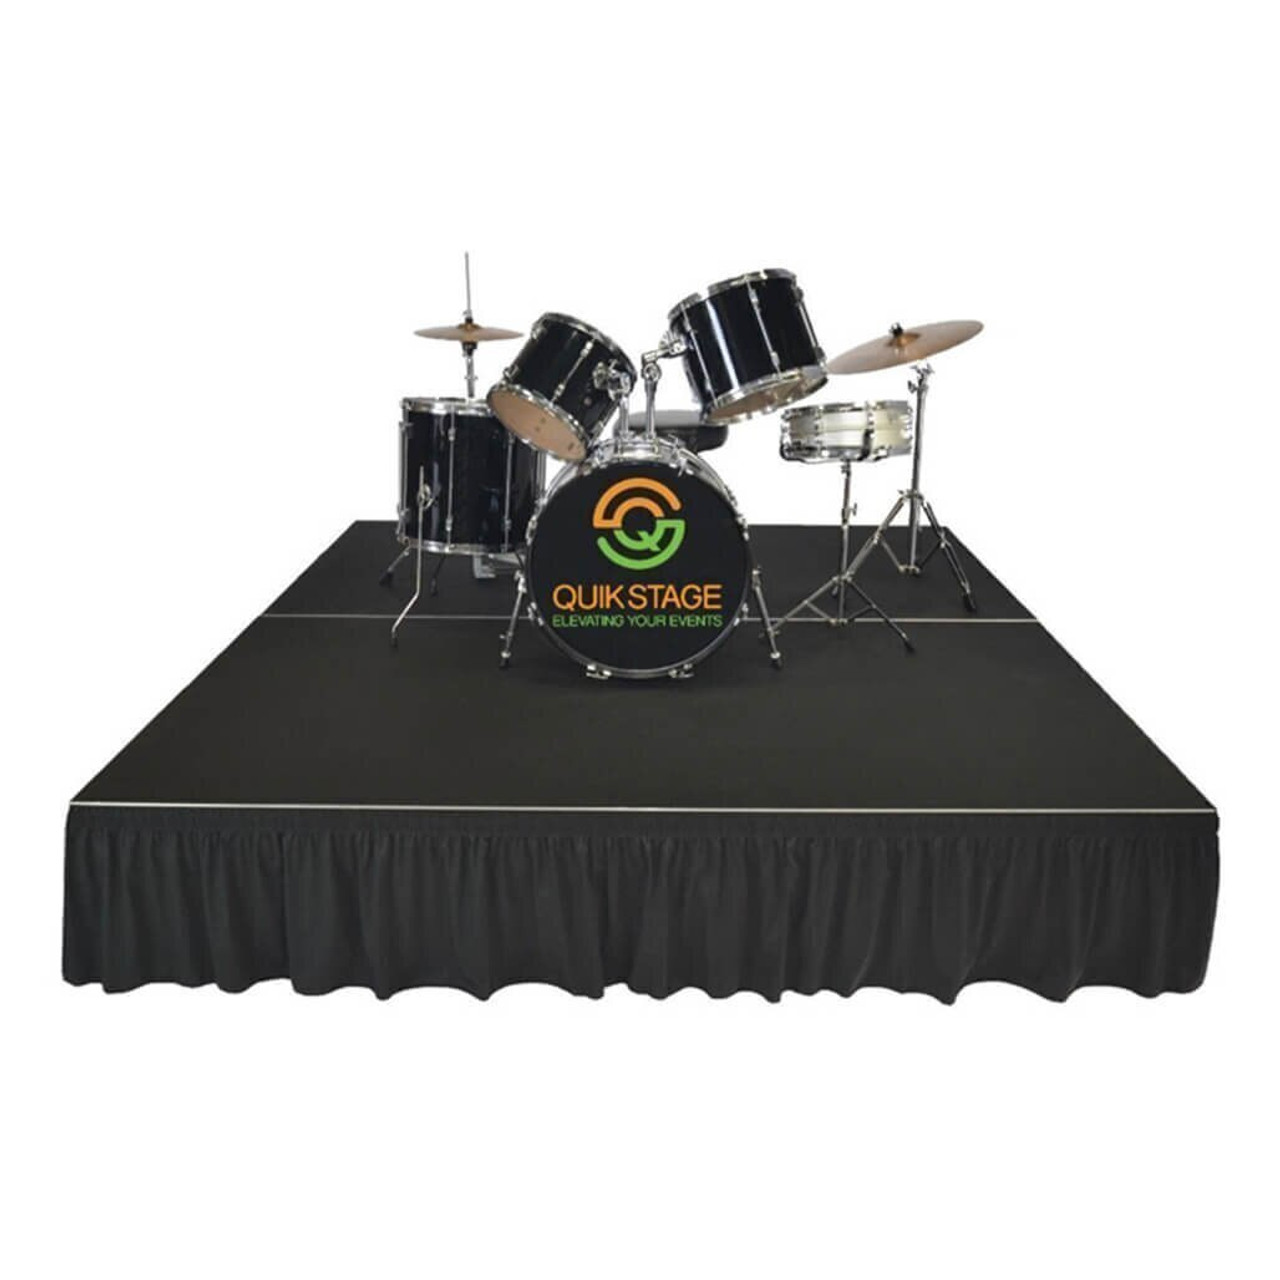 Top reviewed Quik Stage 4' x 32' High Portable Stage Package with Black Polyvinyl Non-Skid Surface. Additional Heights and Surfaces Available - Drum Riser with skirting